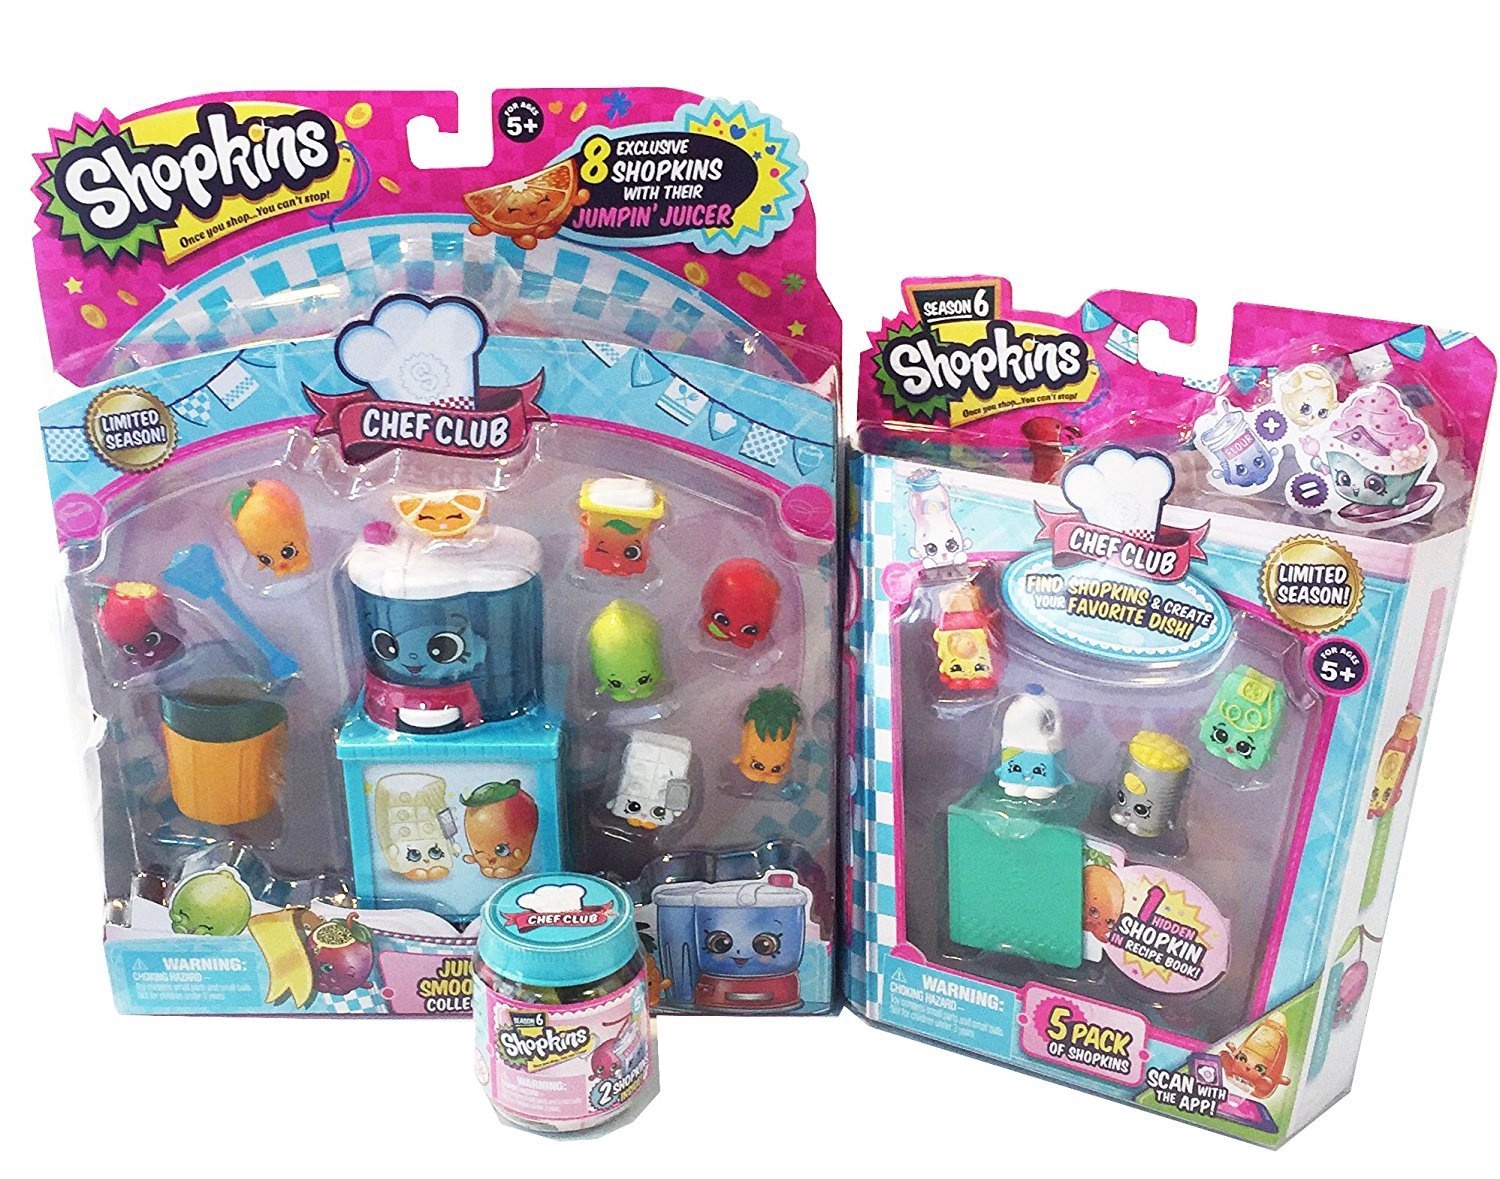 SHOPKINS JUICY SMOOTHIE COLLECTION PLUS 5 PACK